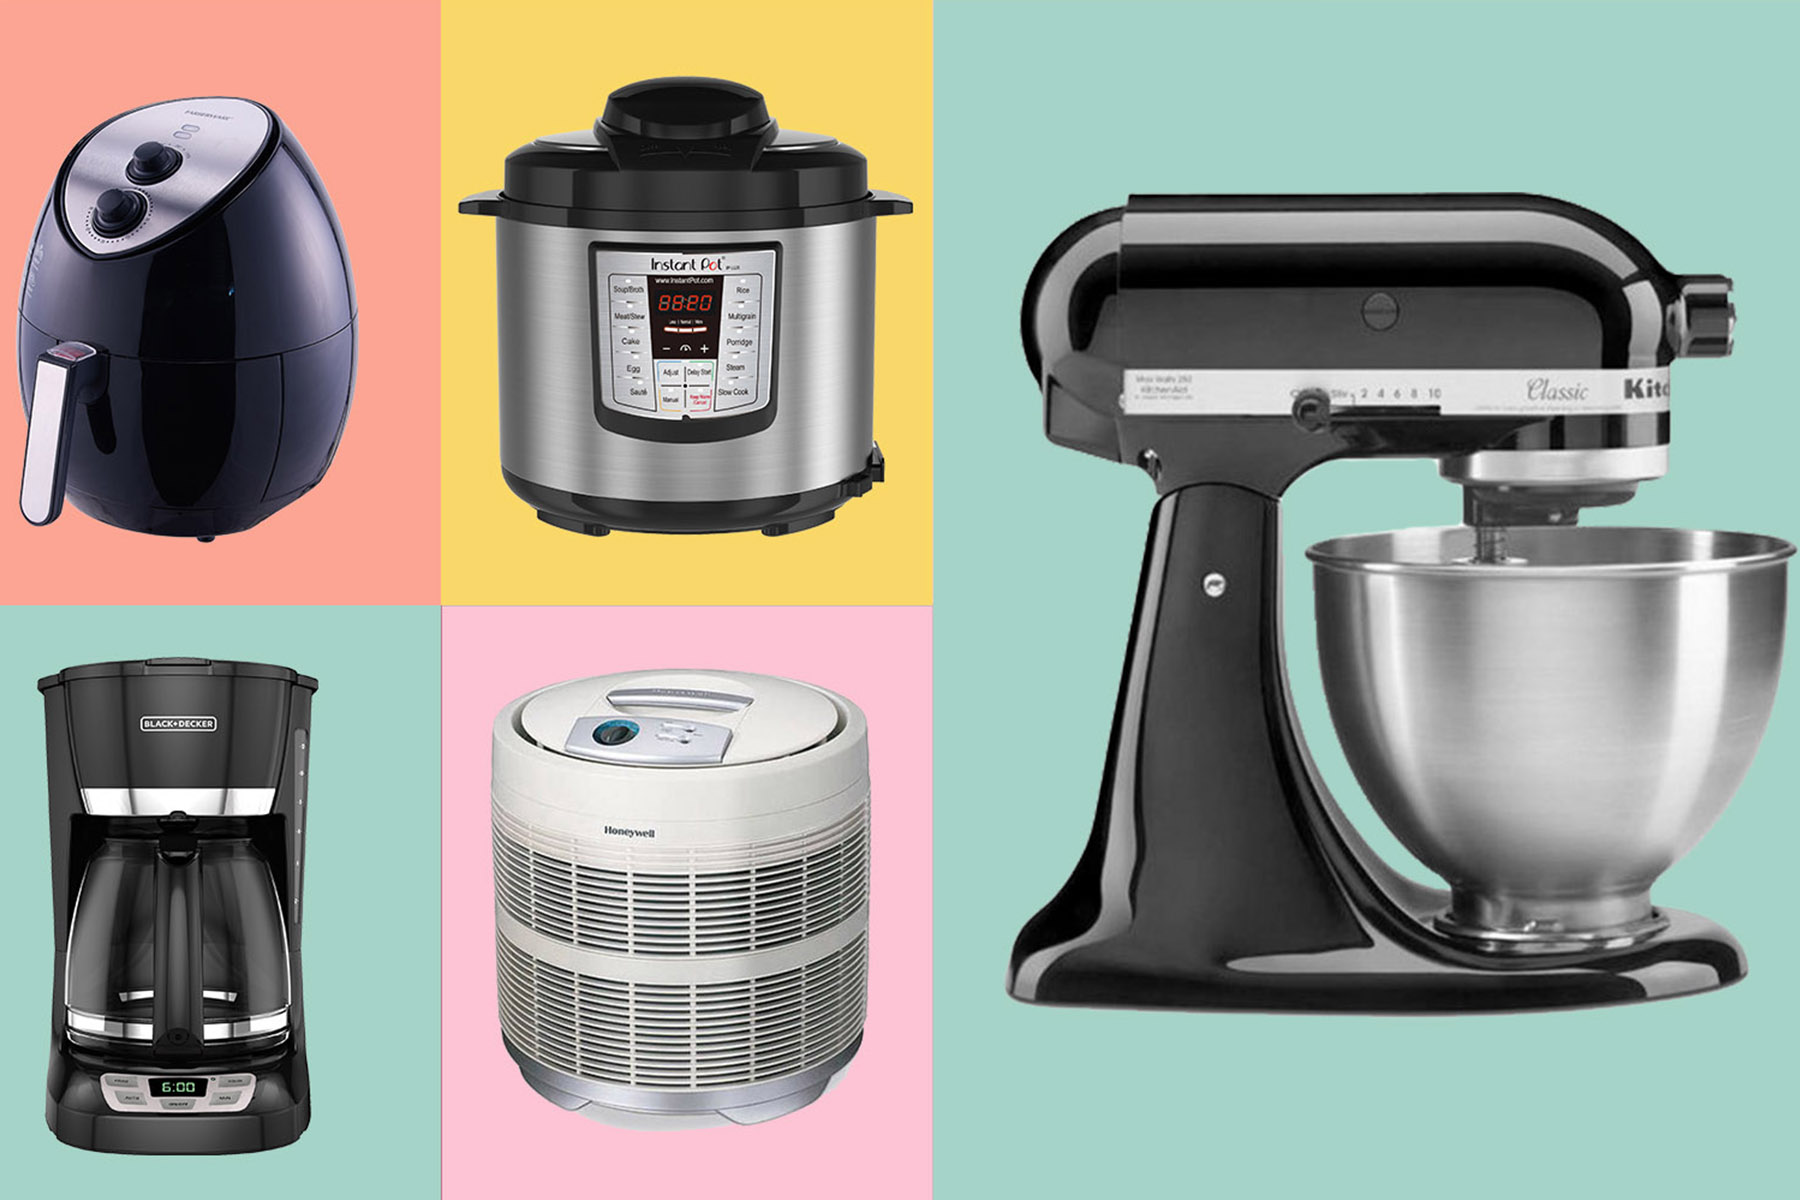 18 of the Most Life-Changing Items for Your Home at Walmart, According to Thousands of Reviewers